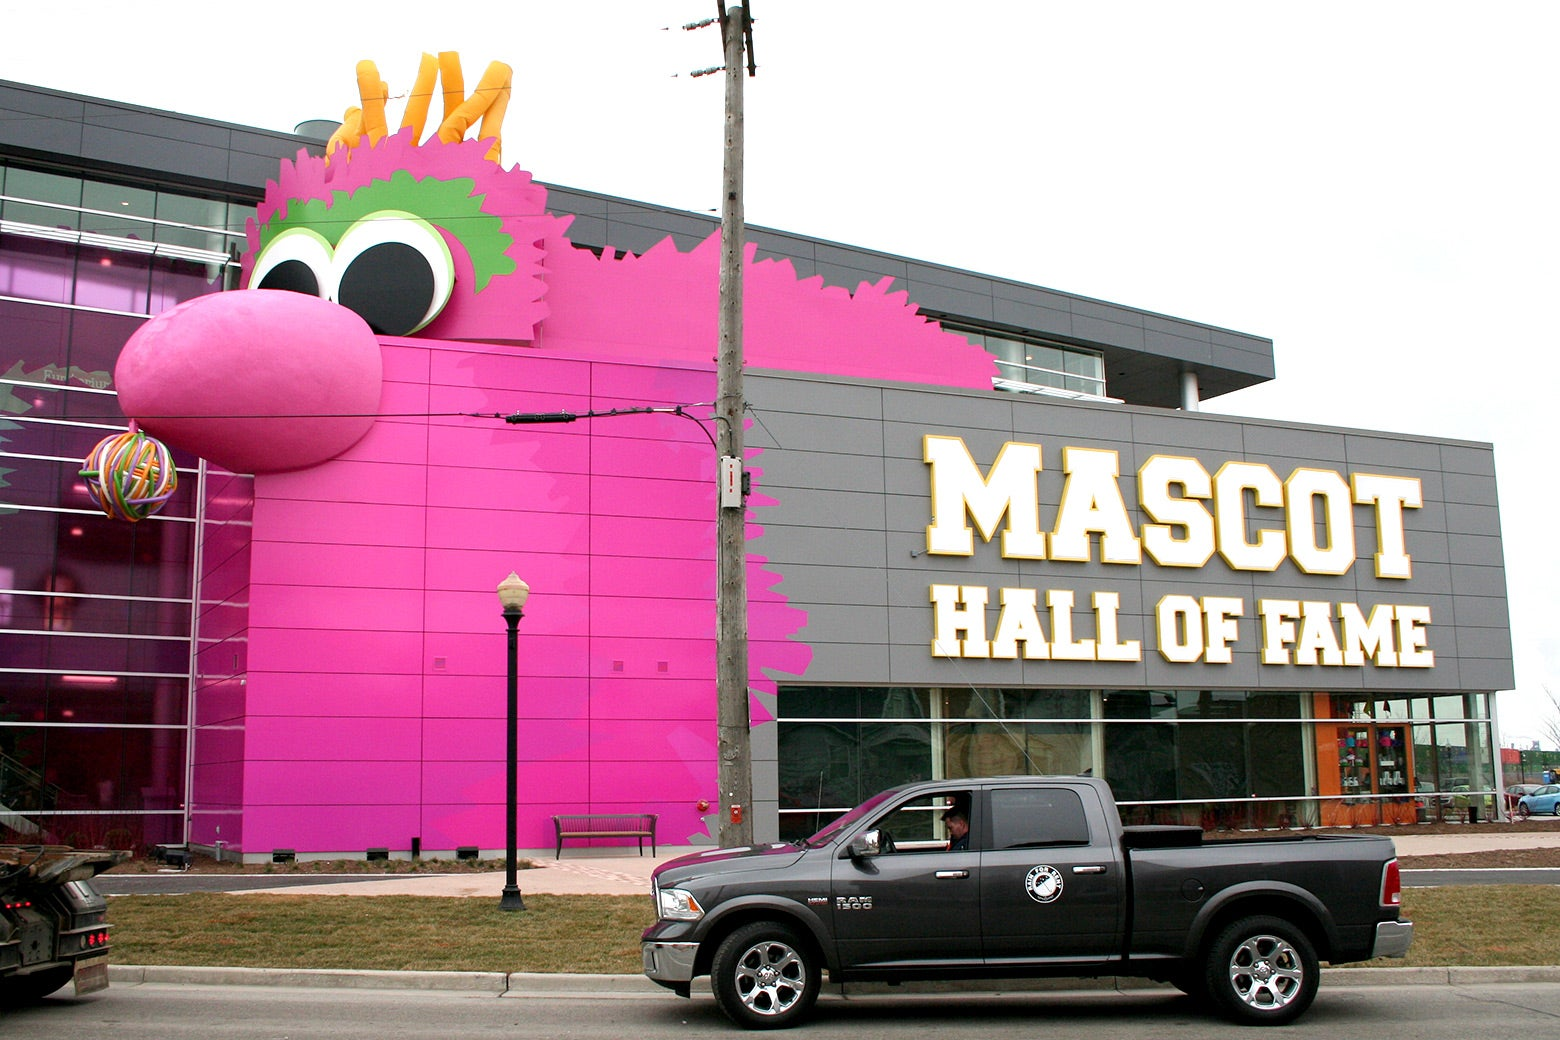 The Mascot Hall of Fame in Whiting, Indiana.